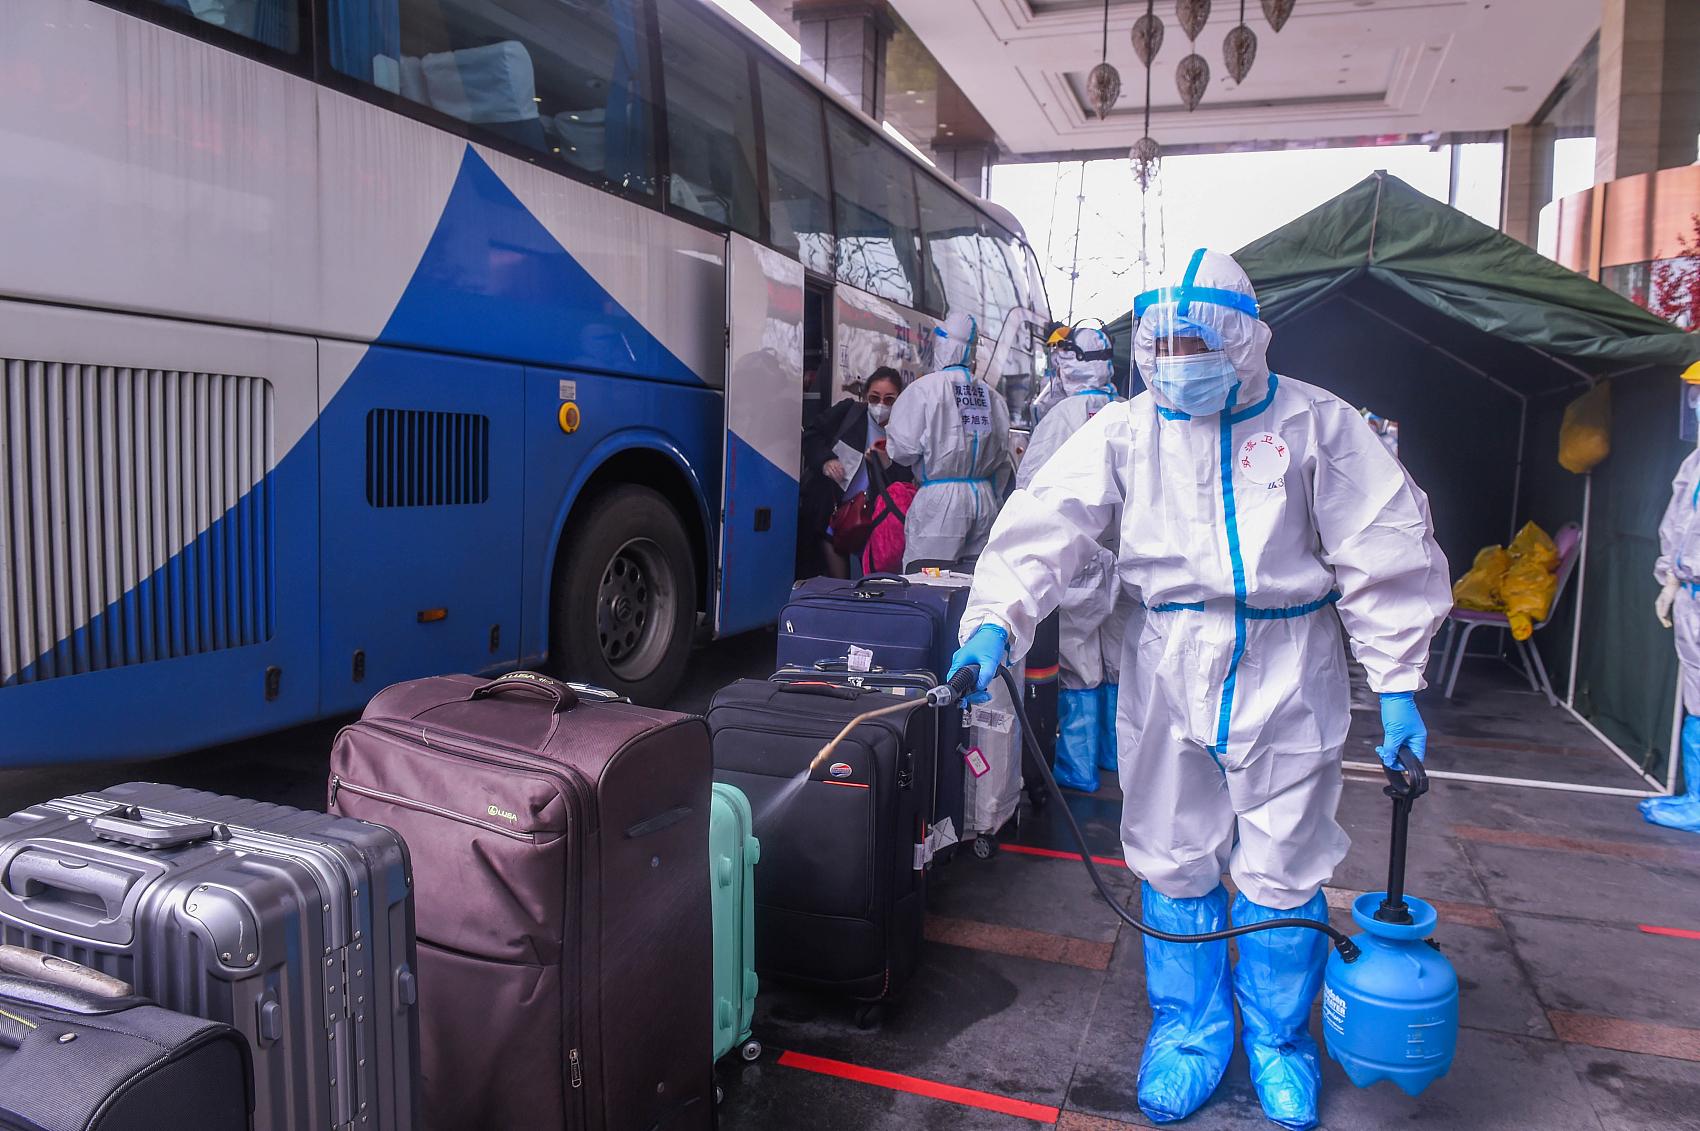 Thousands prosecuted for epidemic-related crimes in China